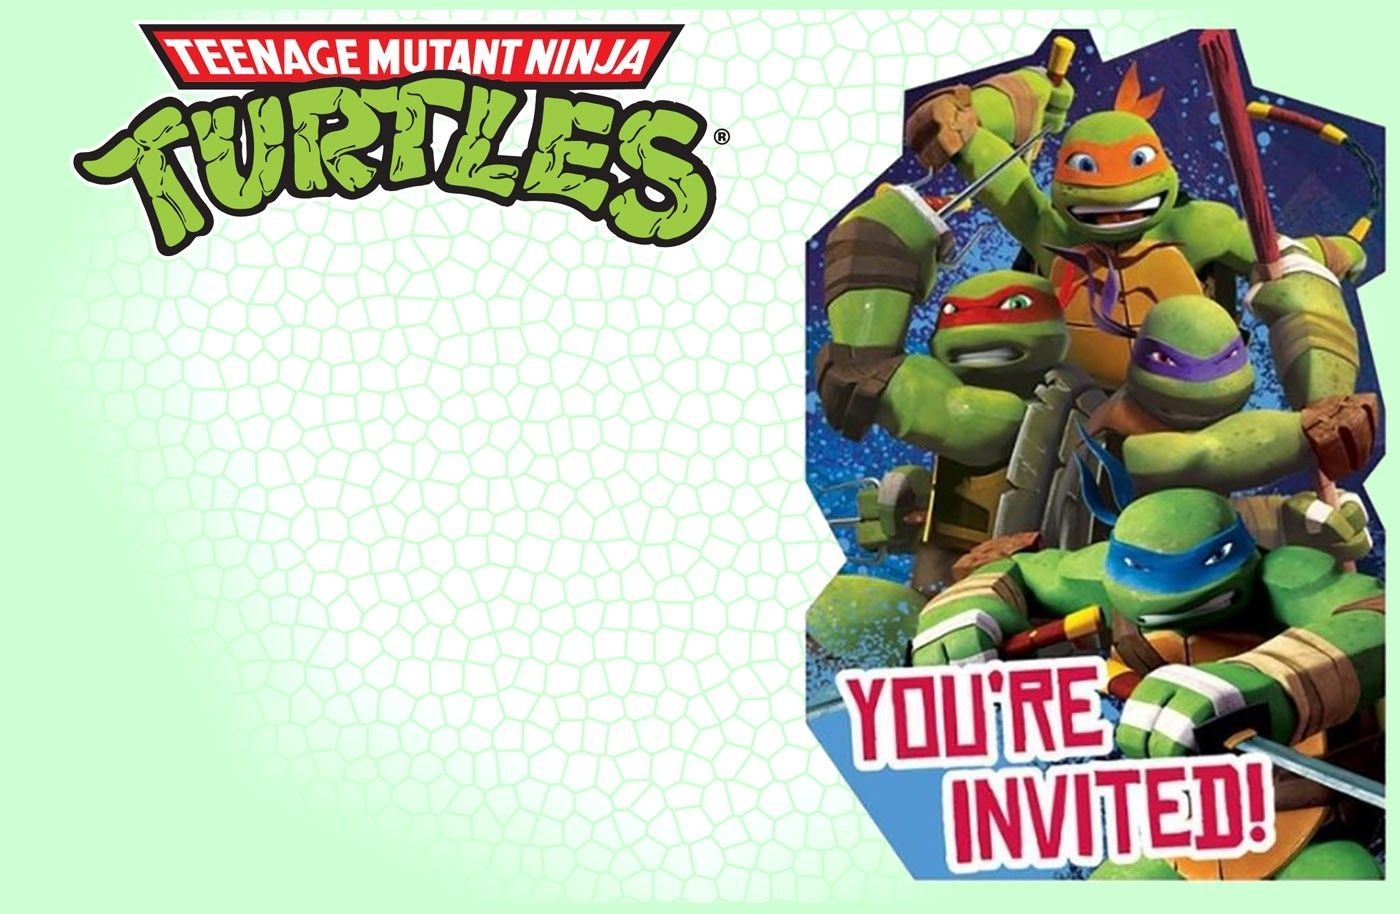 Editable Ninja Turtle Invitation Template | Tkb Printables In 2019 - Teenage Mutant Ninja Turtles Printables Free